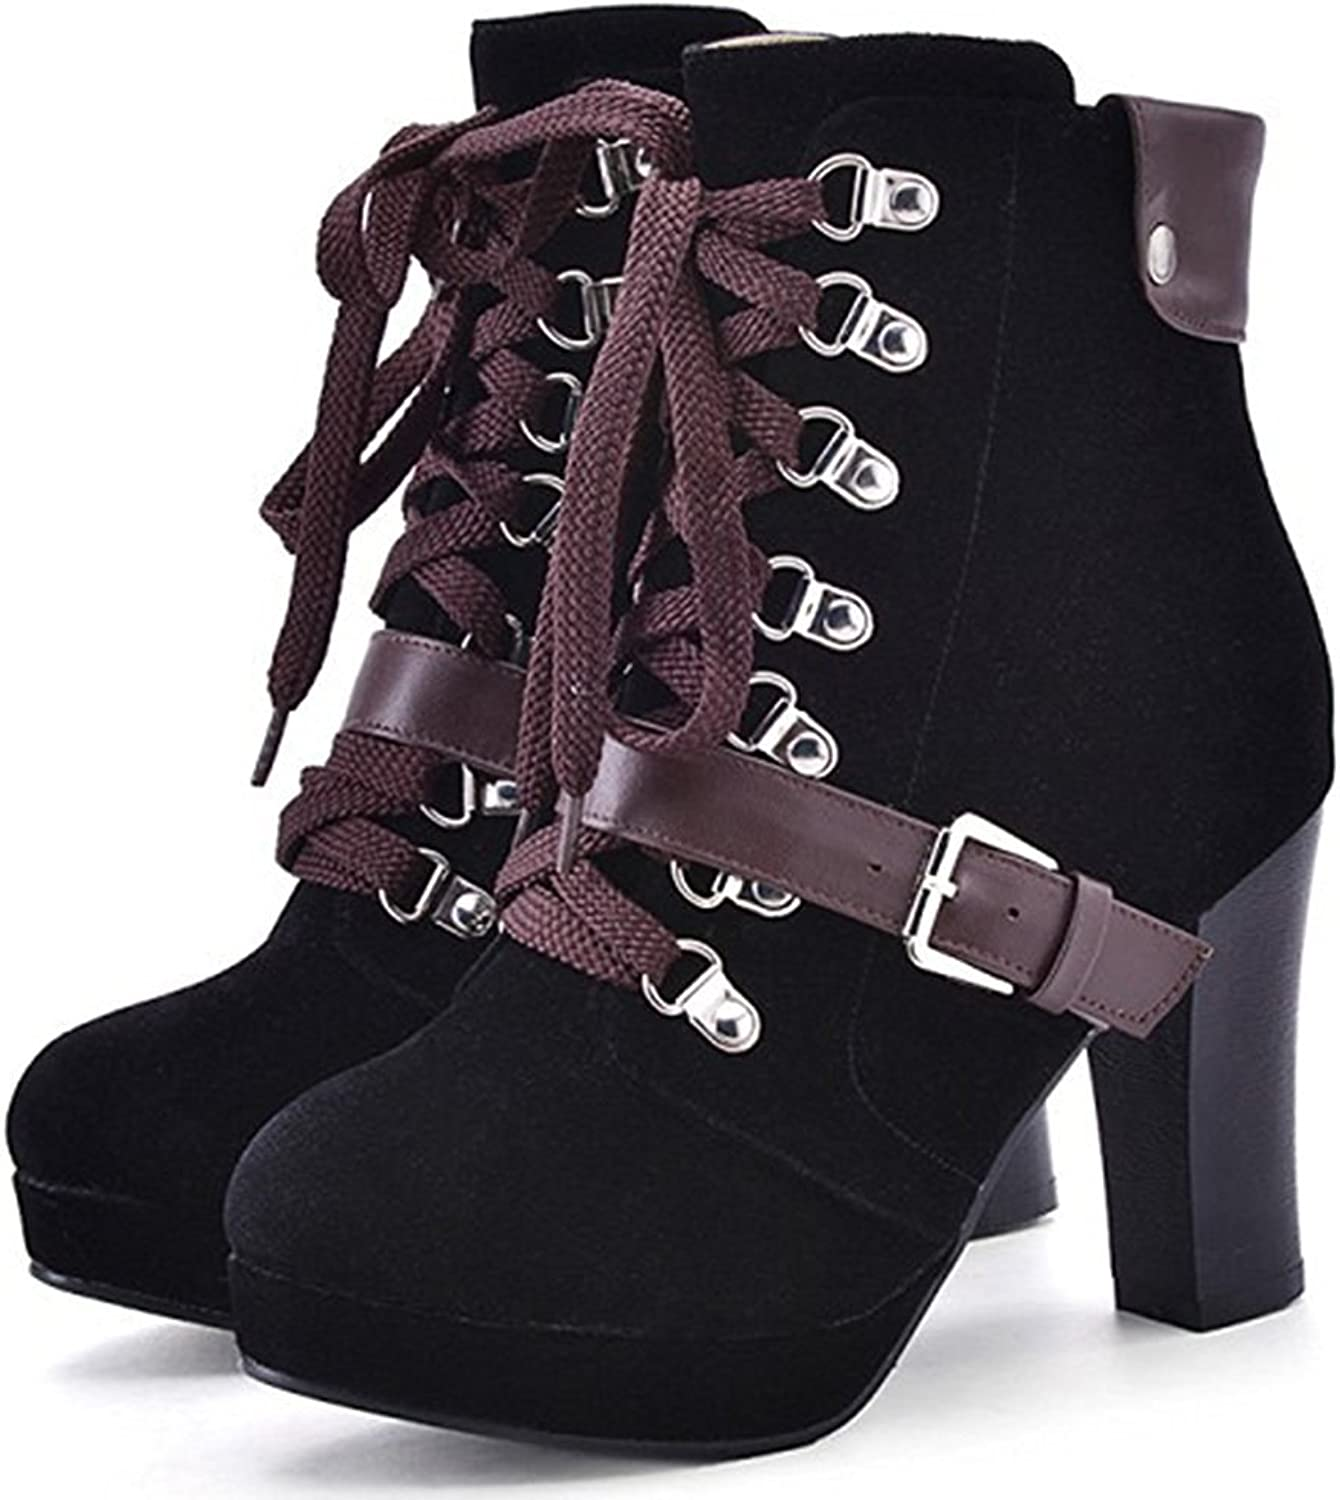 Colnsky Women's Stylish Round Toe Buckled Belt Lace-up Booties Chunky High Heel Platform Ankle Boots